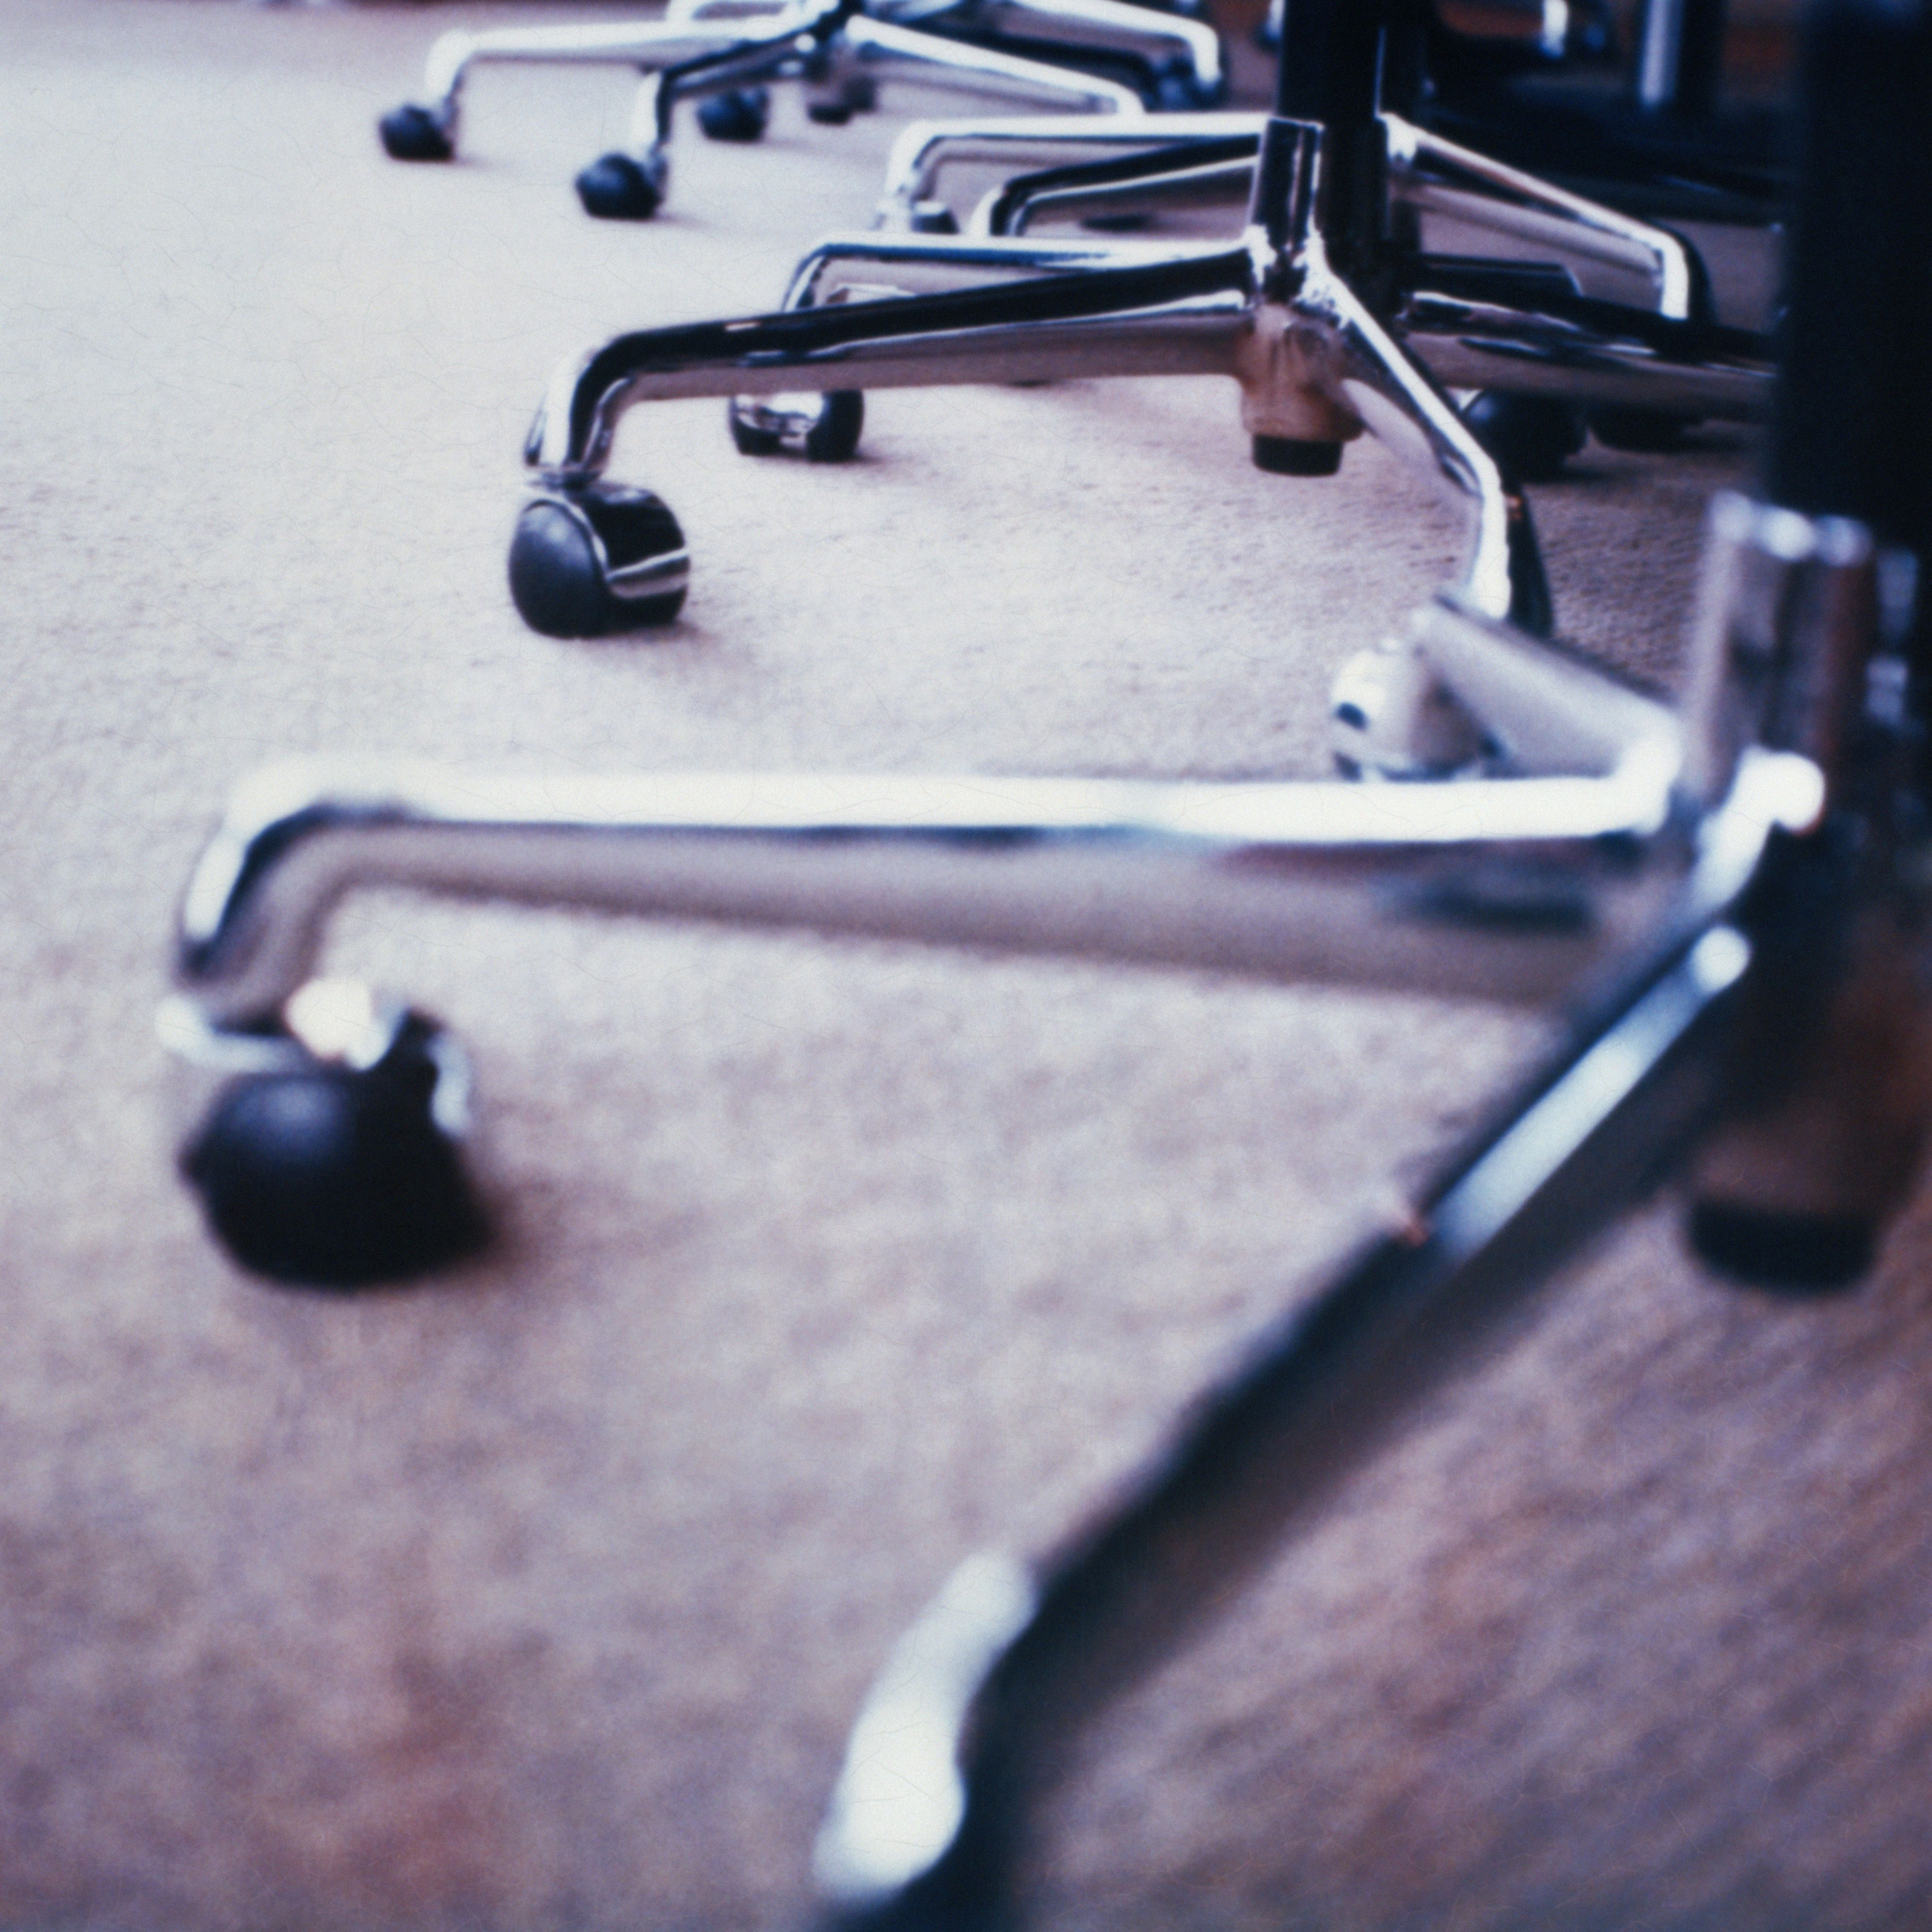 A set of office chairs with castors.